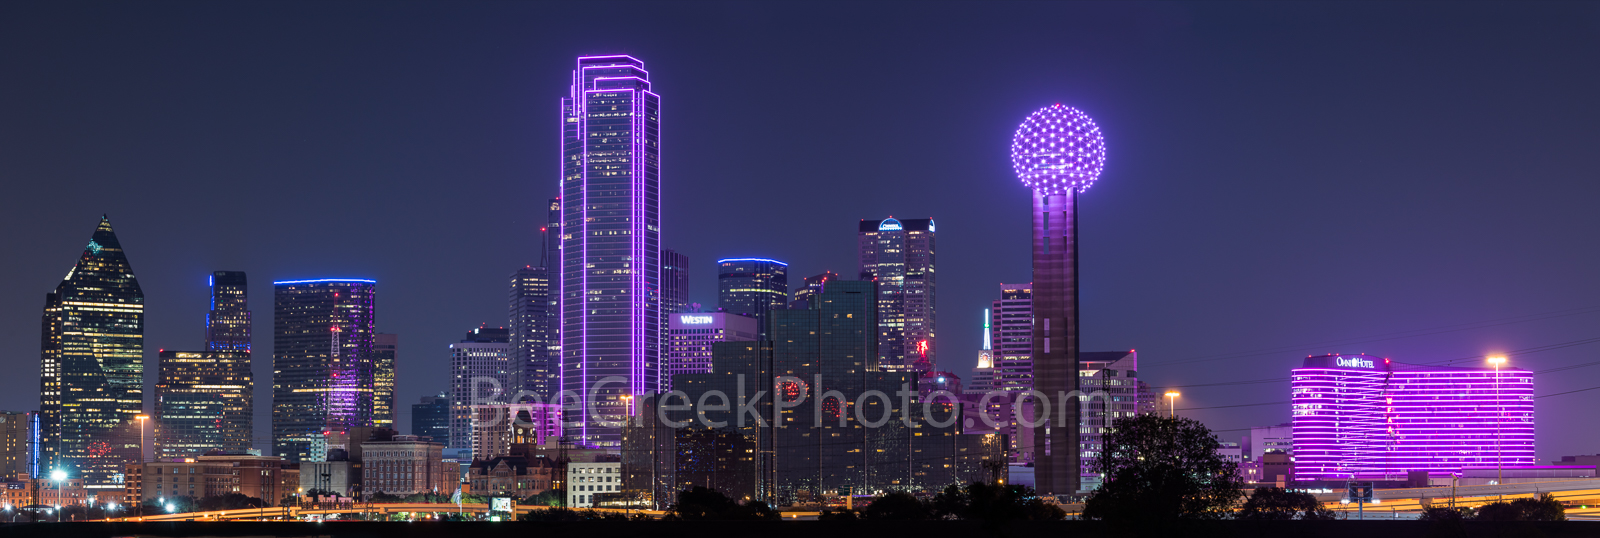 Dallas Skyline, pink, panorama, buildings, city, Bank of America, Reunion Tower, Omni, event, Breast cancer, Susan B Komen, Race for the Cure, Dallas skyline stock photos,, photo